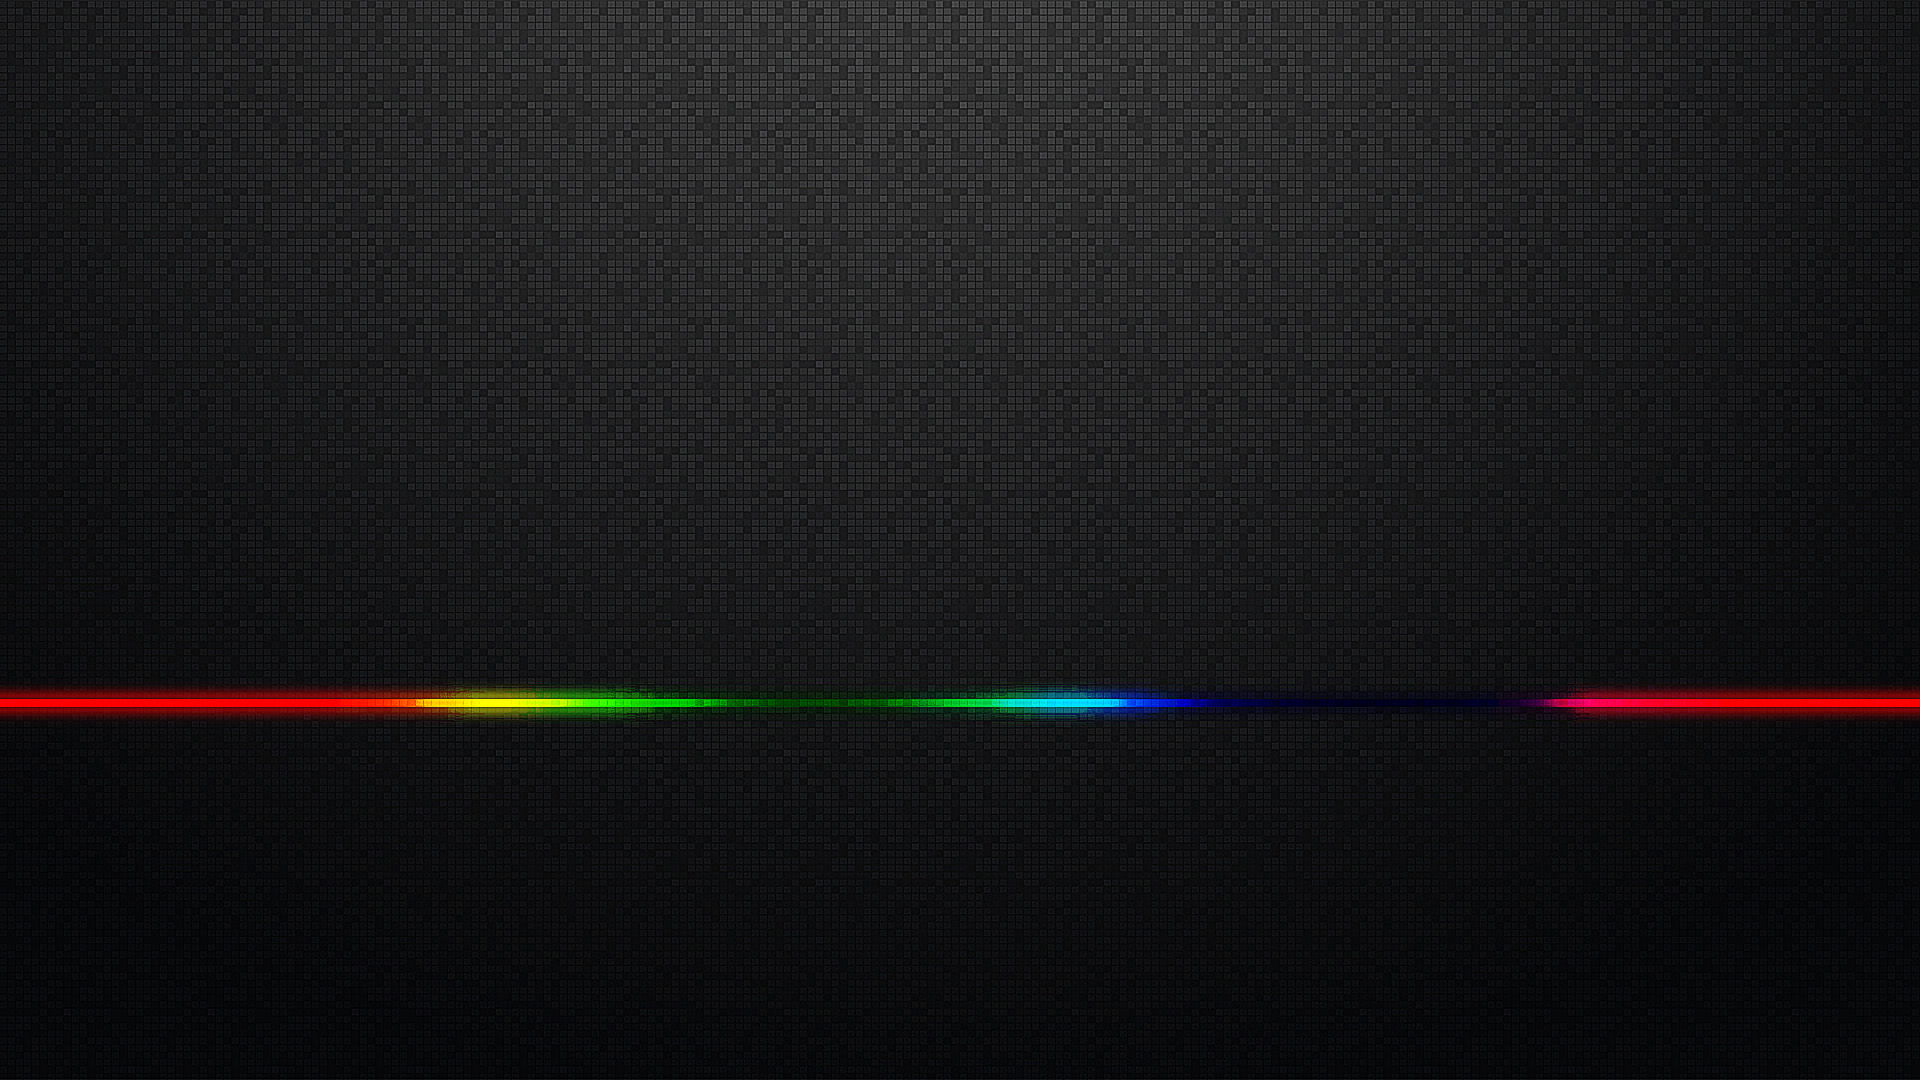 simple-backgrounds-free-download | wallpaper.wiki